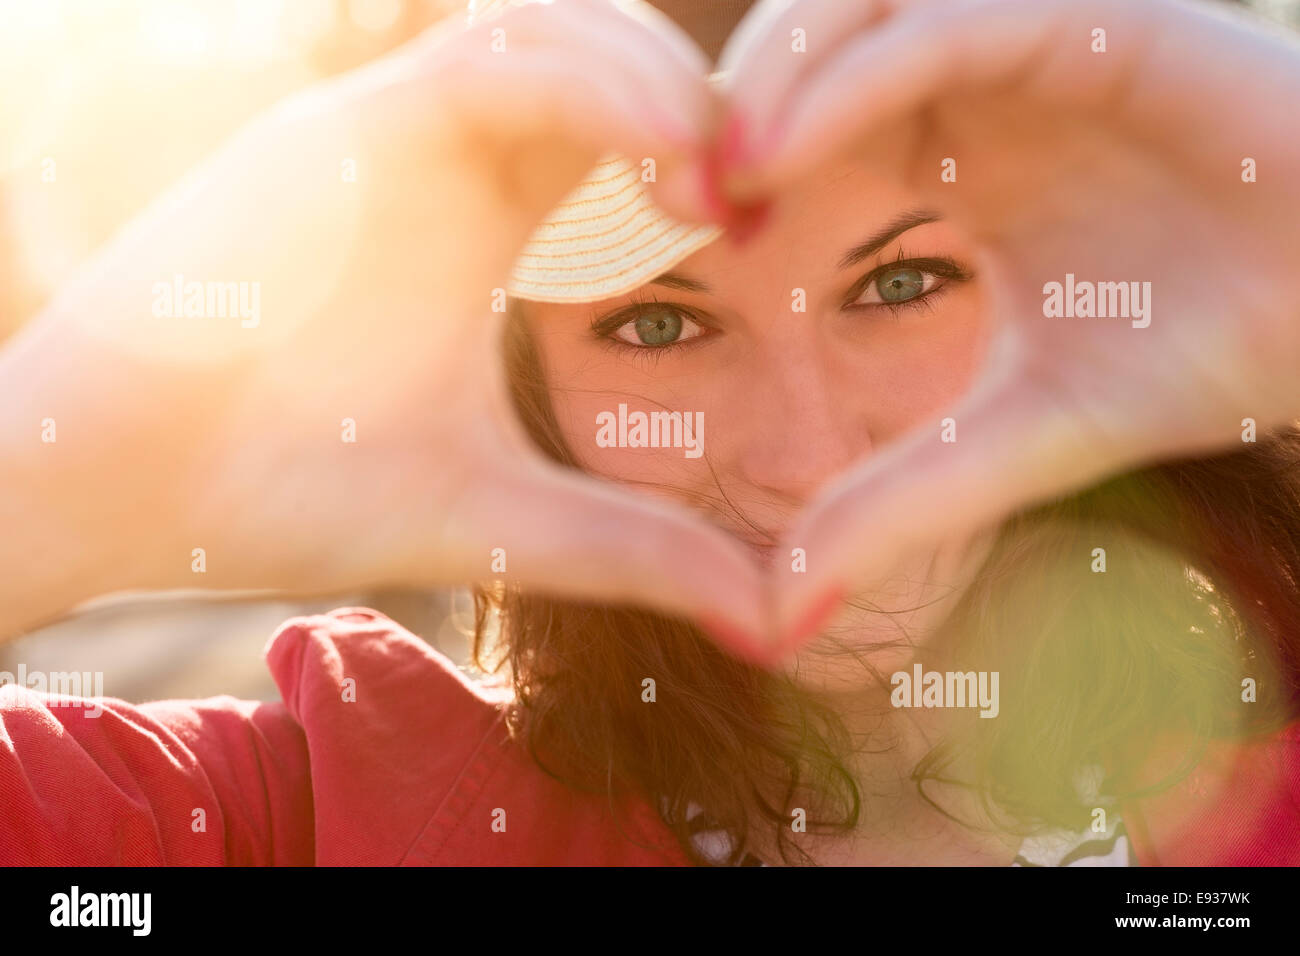 woman making a heart - Stock Image